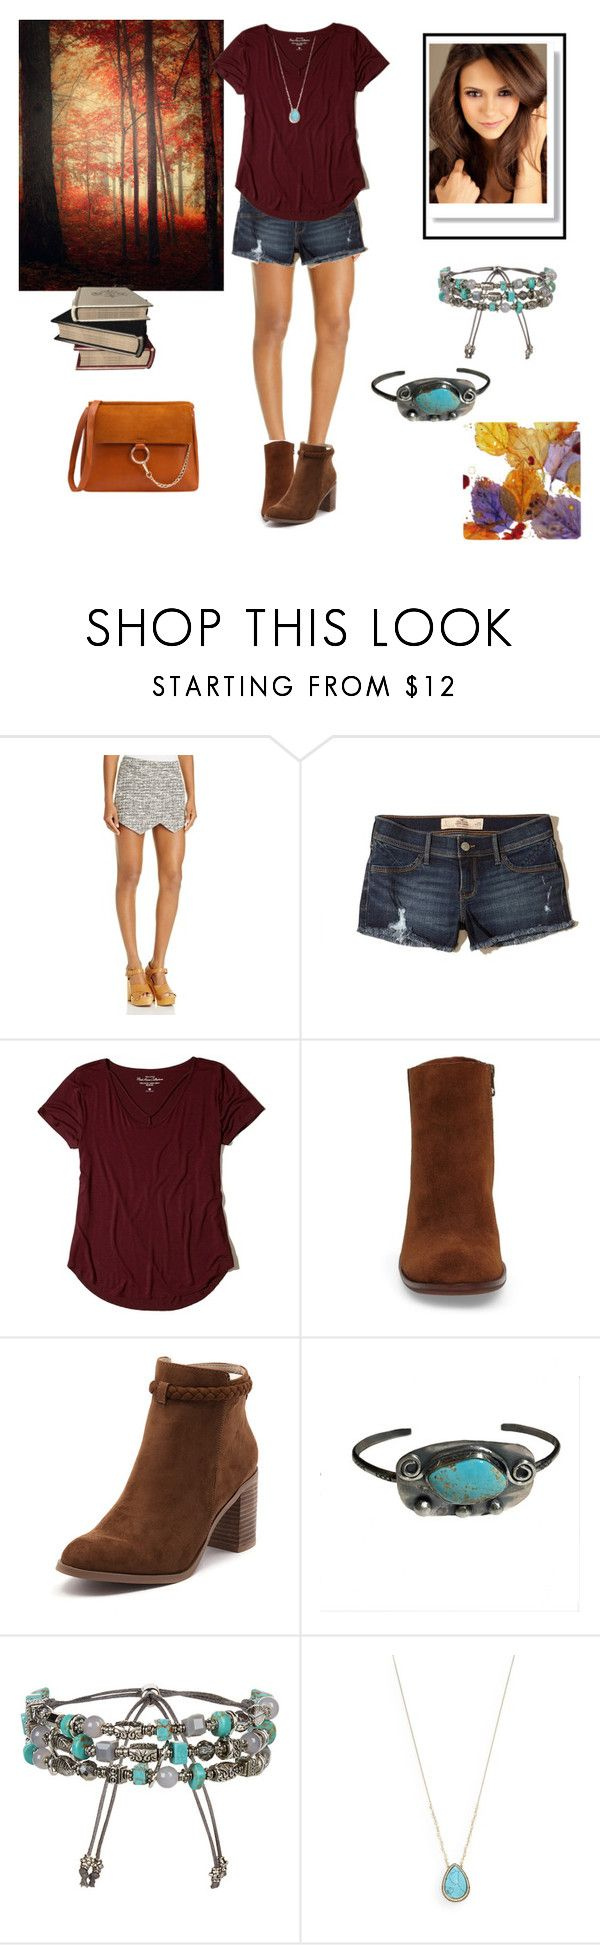 Mid-Season, Shorts and Boots by cat1906 on Polyvore featuring Hollister Co., Aqua, Billini, Kork-Ease, Accessorize and Natasha